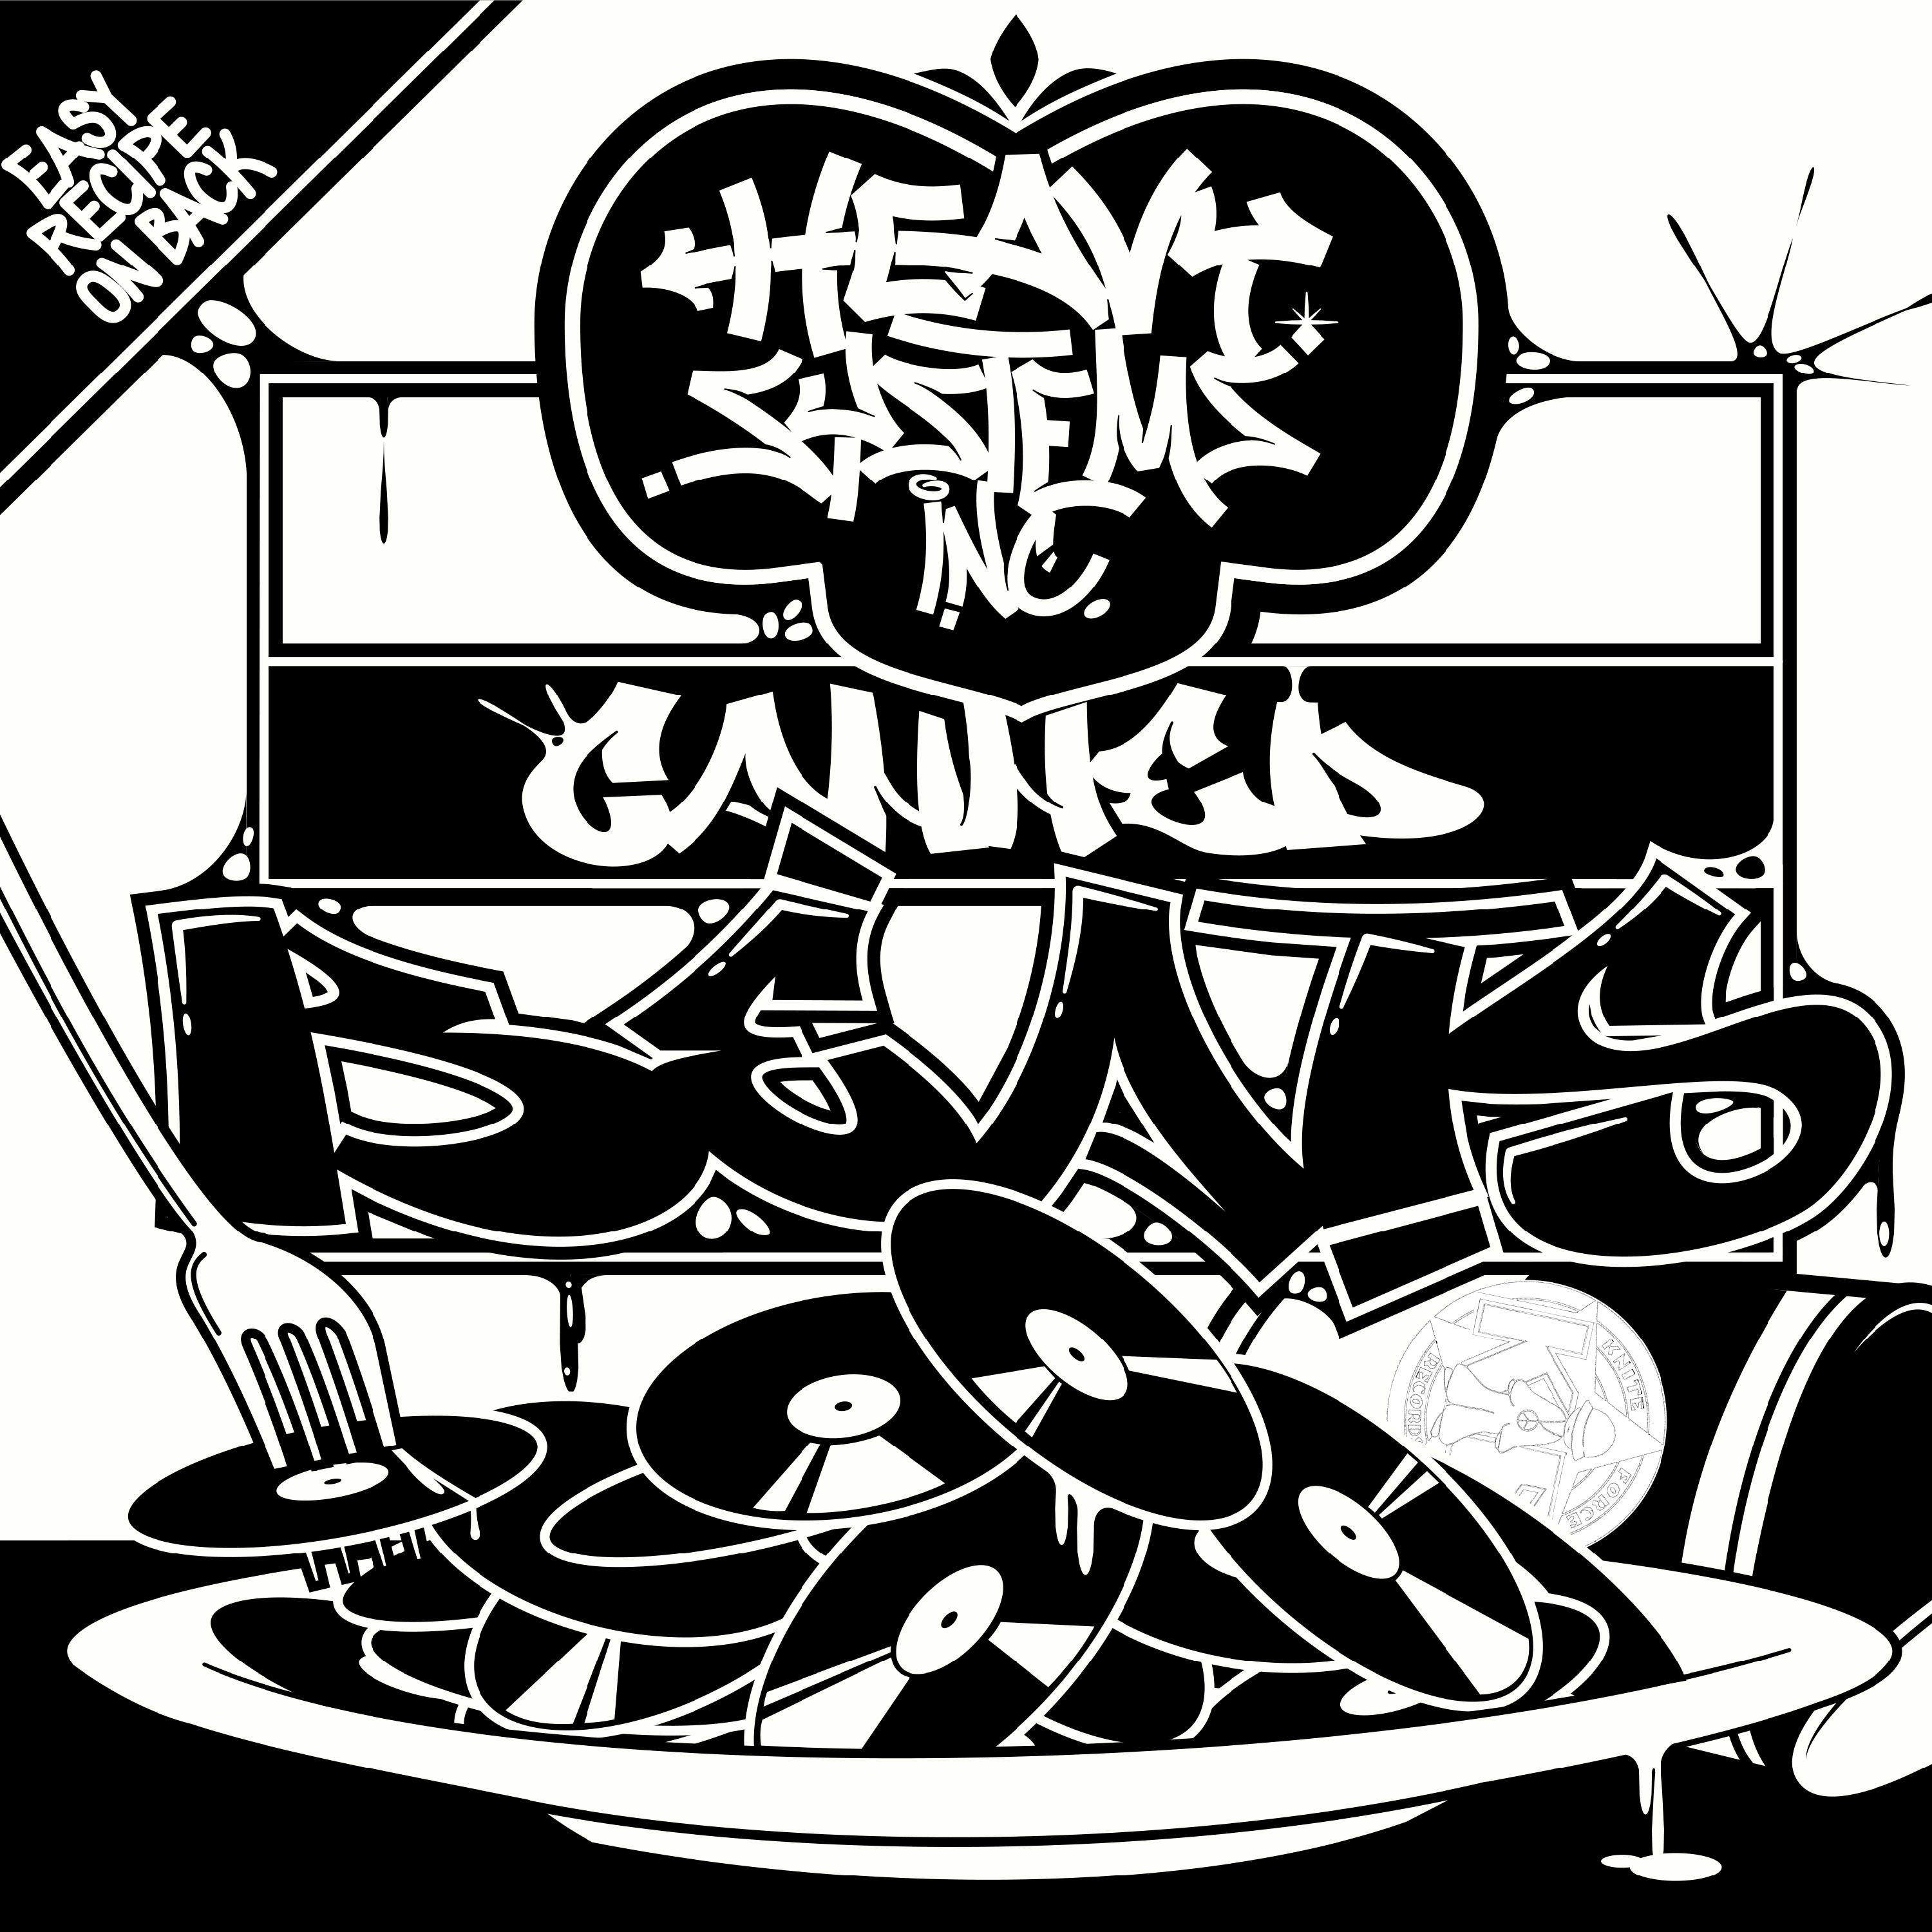 [KFCD031] Heavy Systems Inc - Canned Beats (Digital Only)